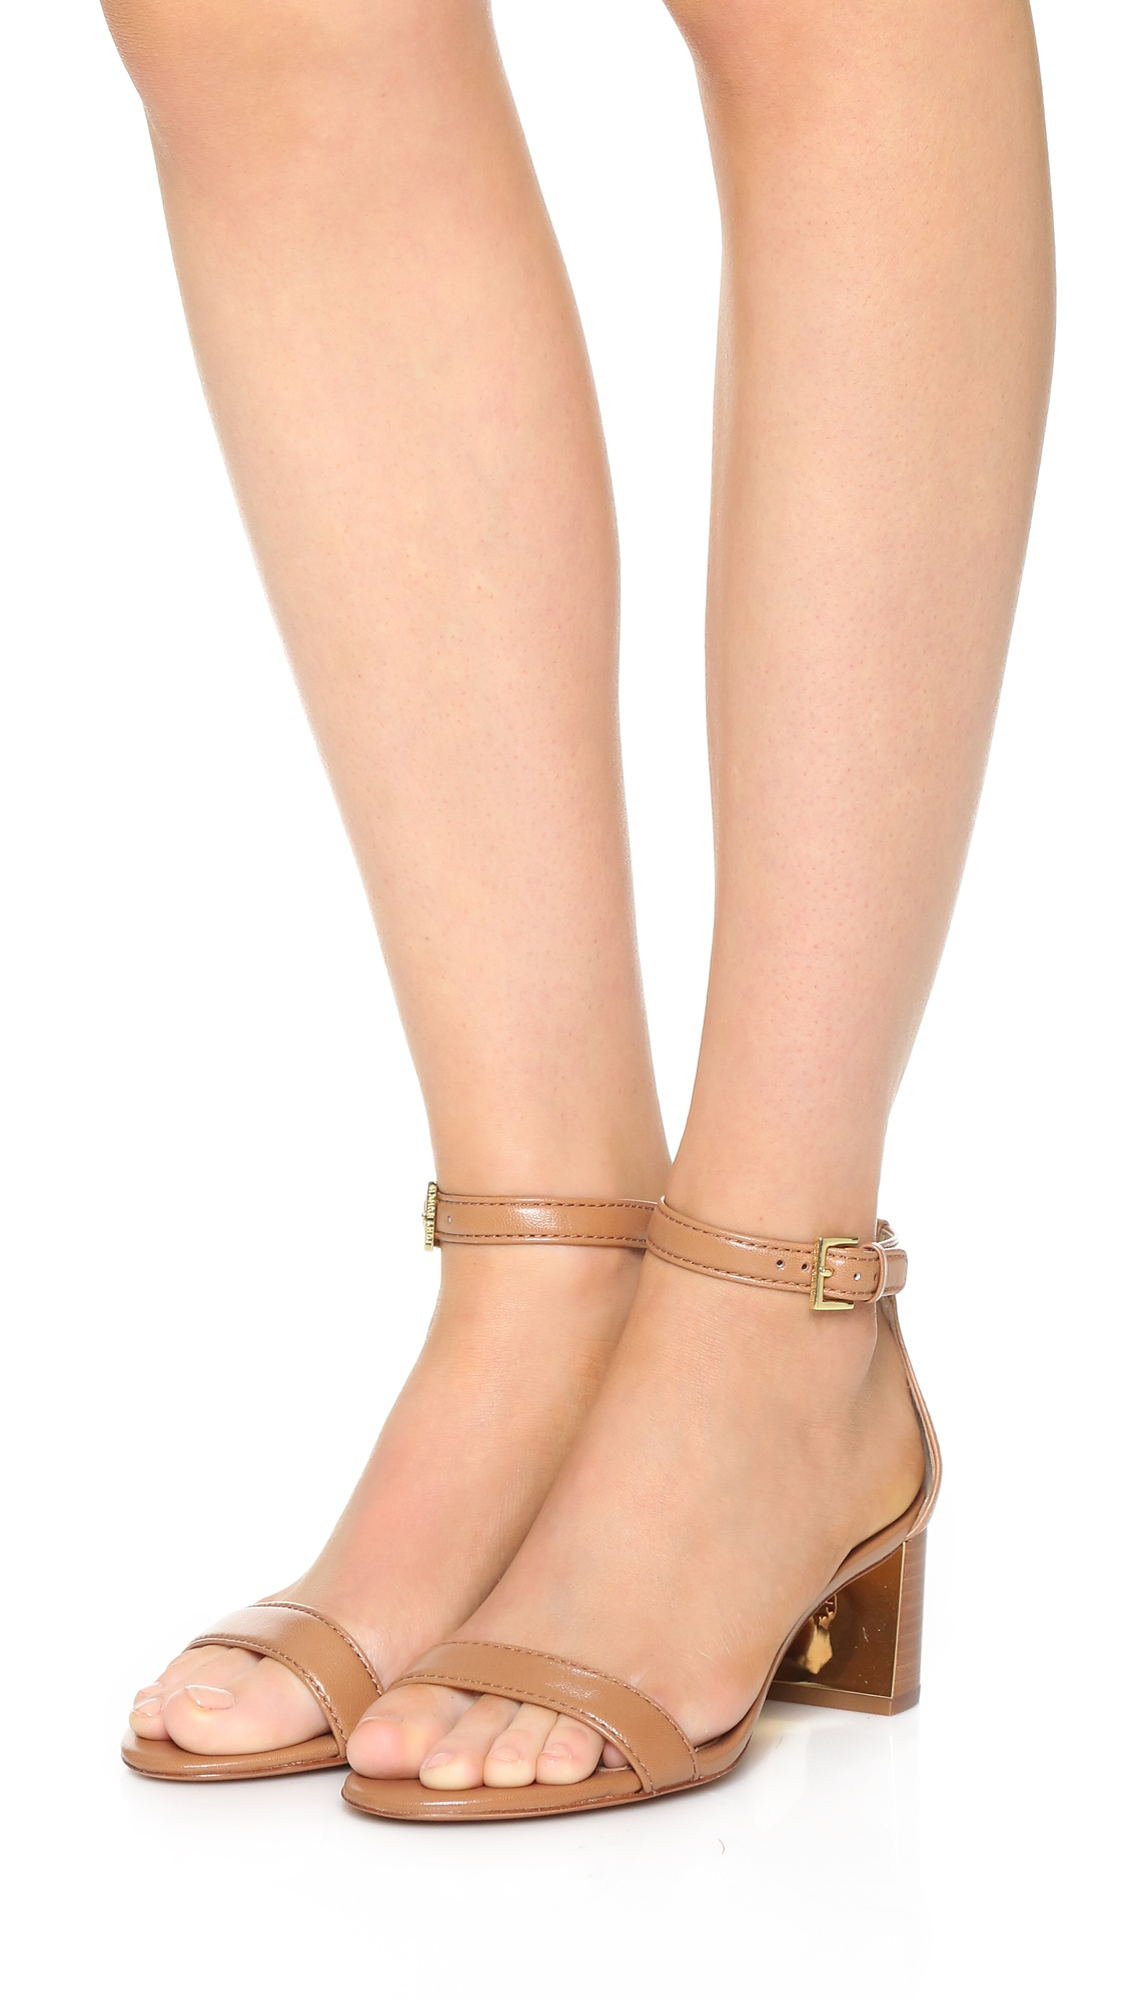 e92257d6fc16 Lyst - Tory Burch Cecile City Sandals in Natural